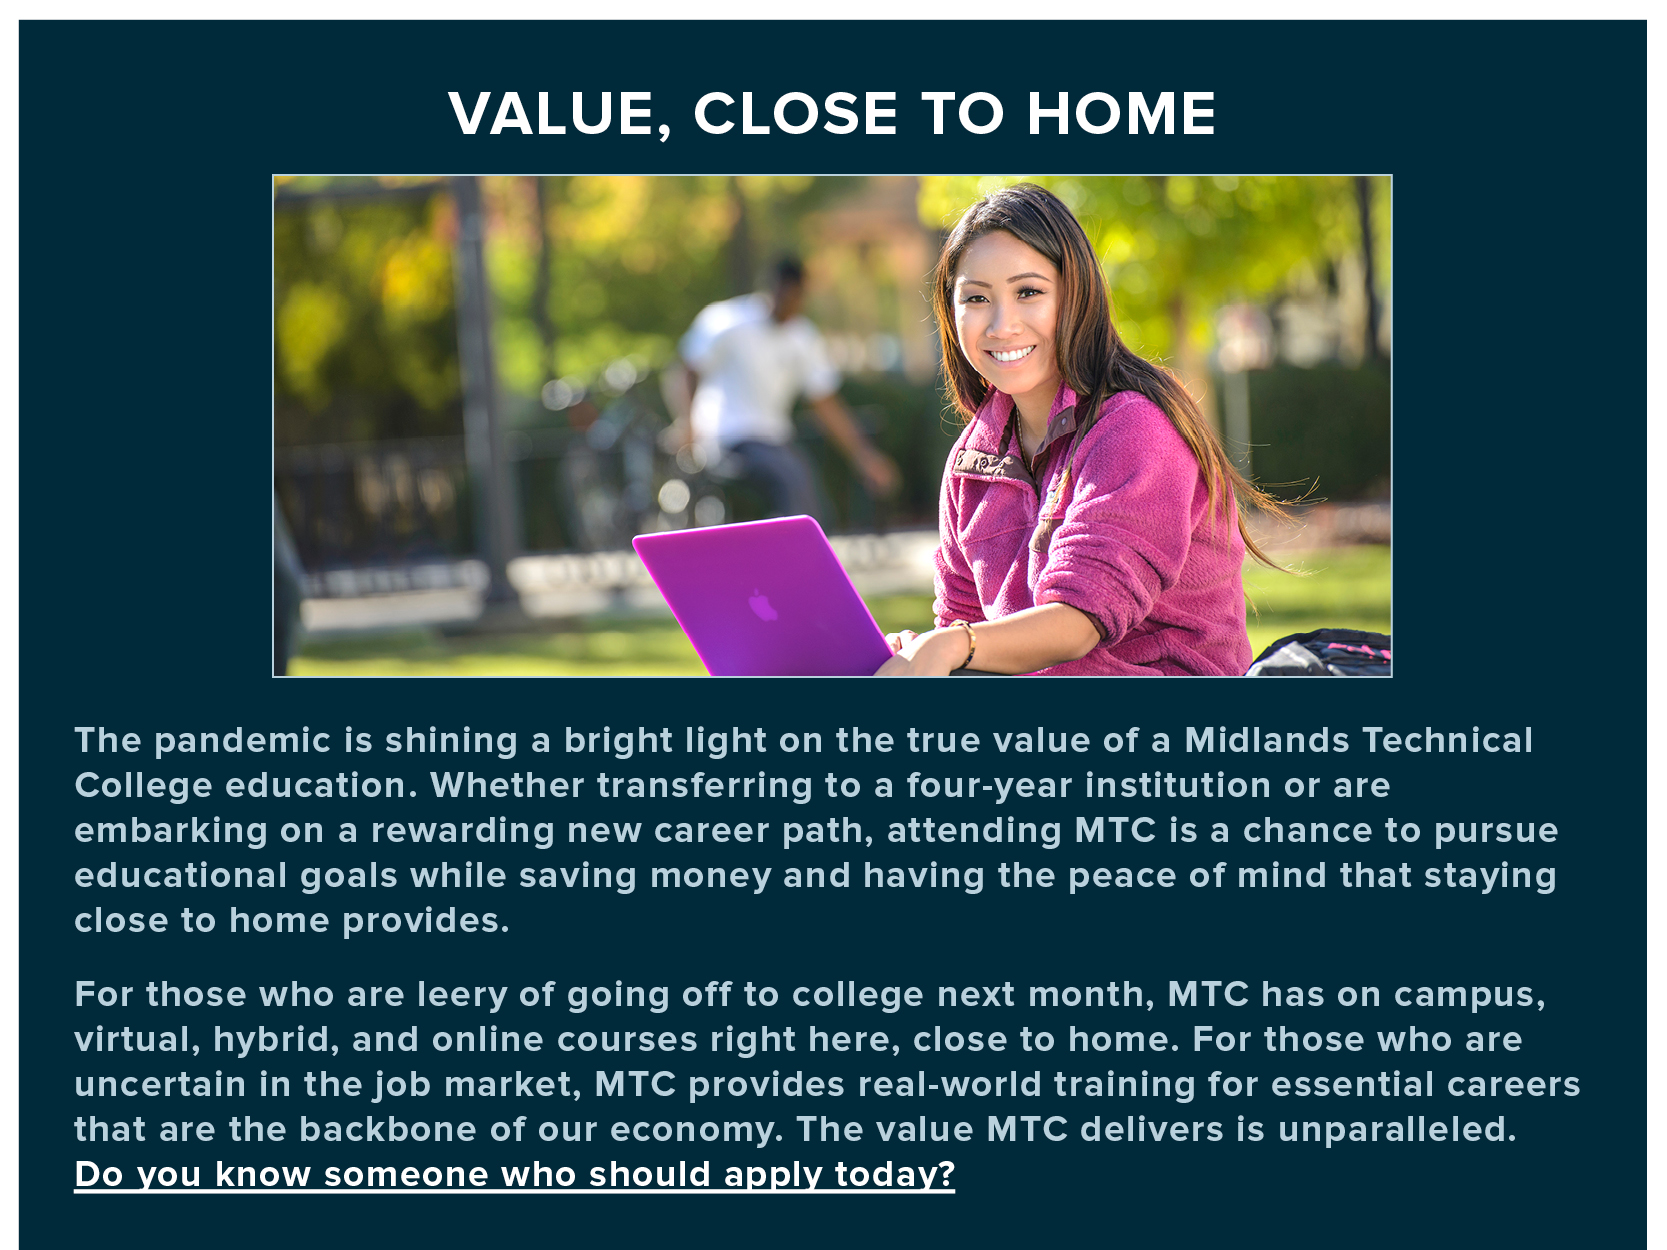 VALUE, CLOSE TO HOME: The pandemic is shining a bright light on the true value of a Midlands Technical College education. Whether transferring to a four-year institution or are embarking on a rewarding new career path, attending MTC is a chance to pursue educational goals while saving money and having the peace of mind that staying close to home provides. For those who are leery of going off to college next month, MTC has on campus, virtual, hybrid, and online courses right here, close to home. For those who are uncertain in the job market, MTC provides real-world training for essential careers that are the backbone of our economy. The value MTC delivers is unparalleled. Do you know someone who should apply today?